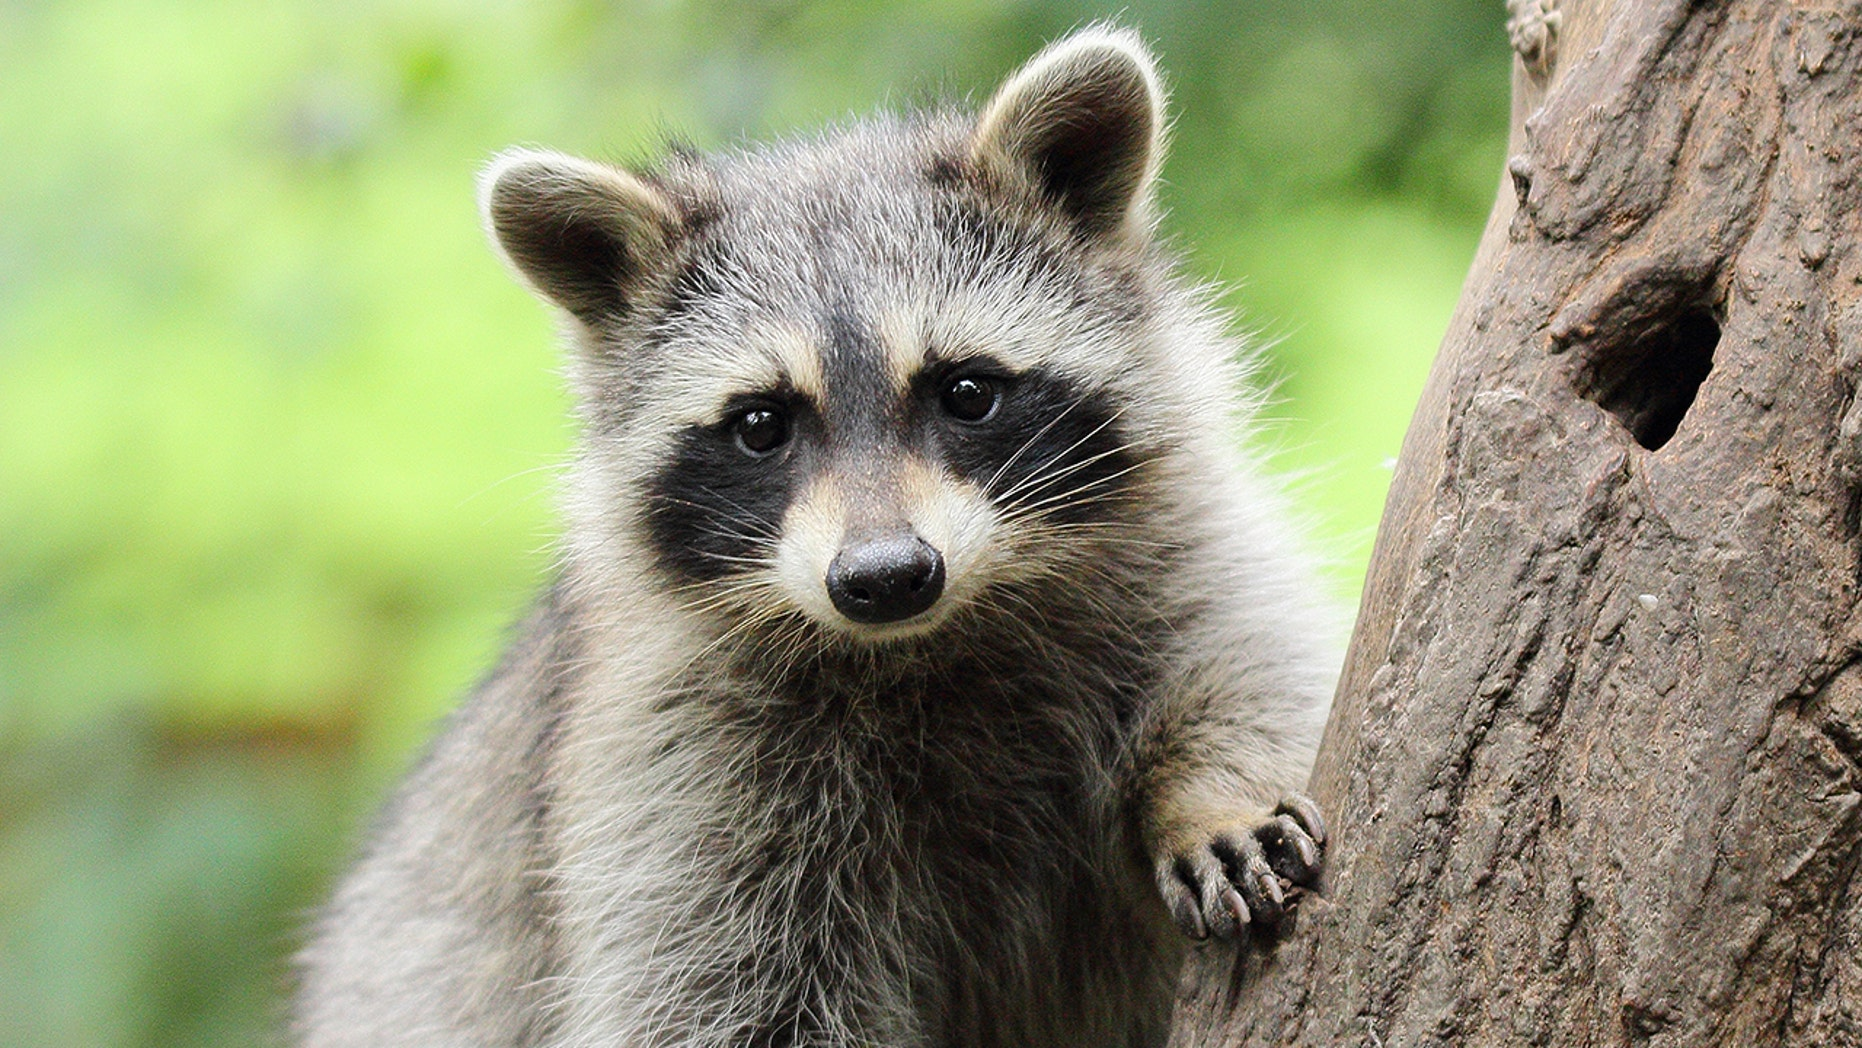 A Florida man set a raccoon on fire after the animal ate his mangoes.